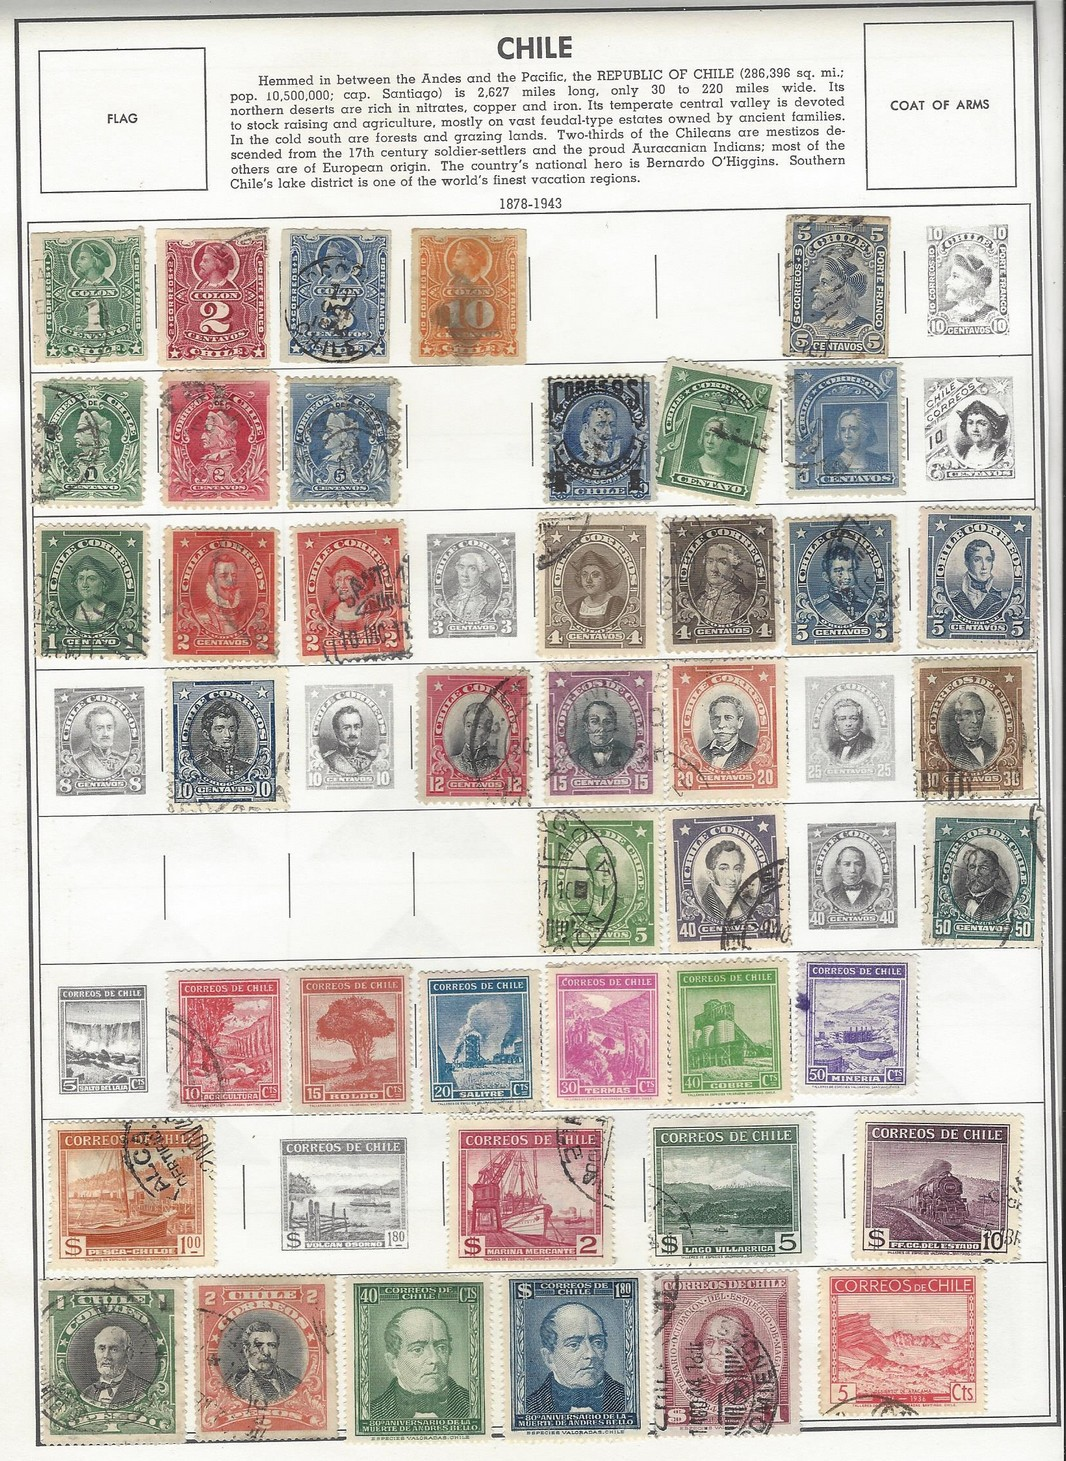 Chile 1878 - 1970 mint & used collection (119 stamps)